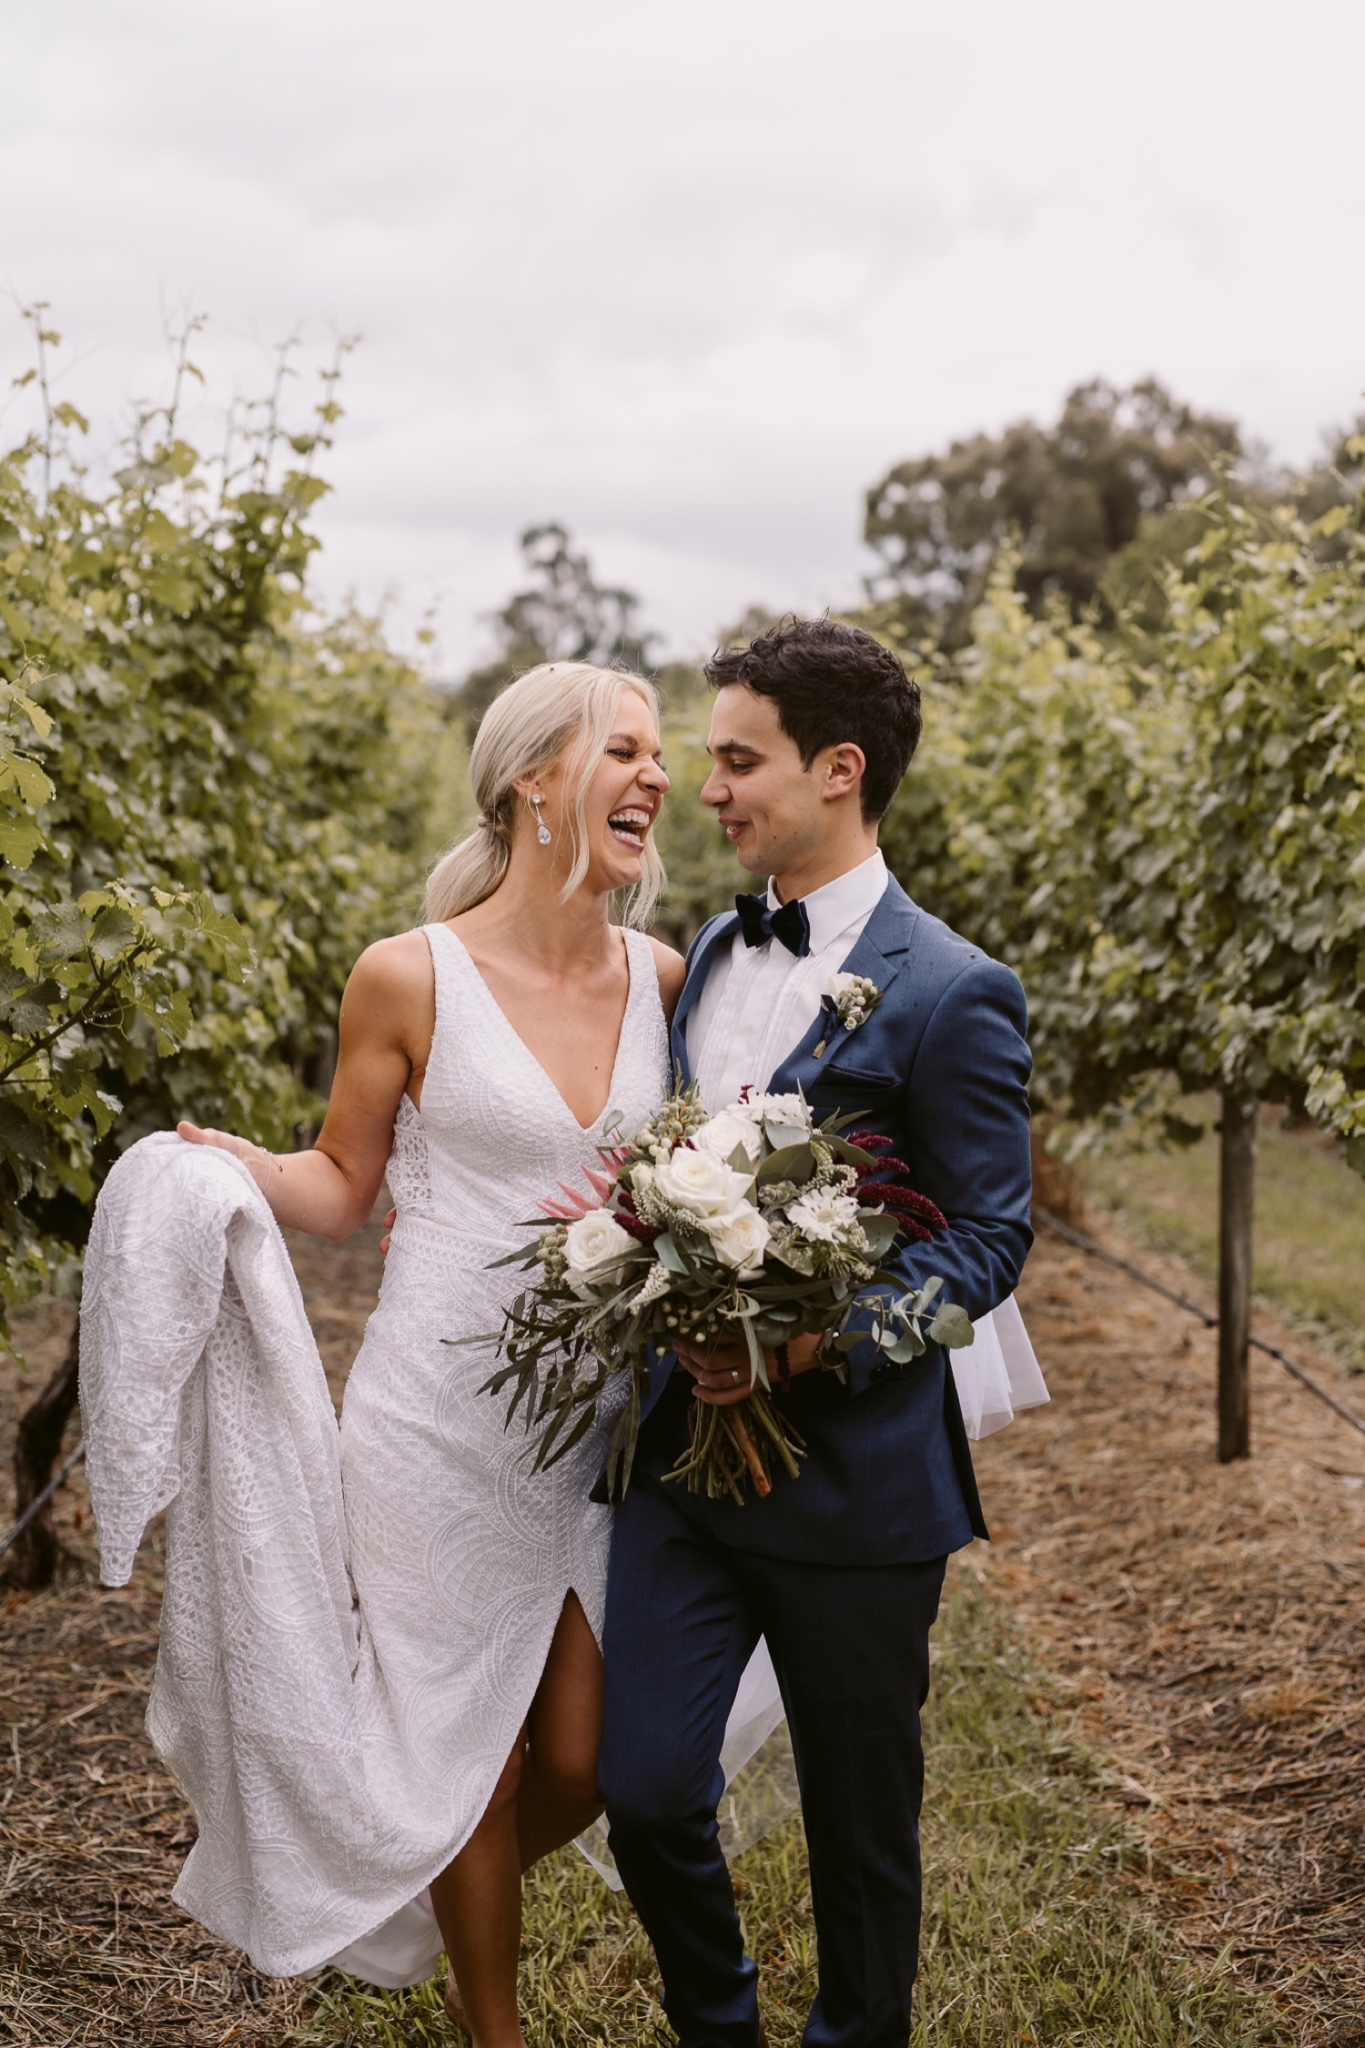 Immerse Yarra Valley Winery Wedding Photography79.jpg